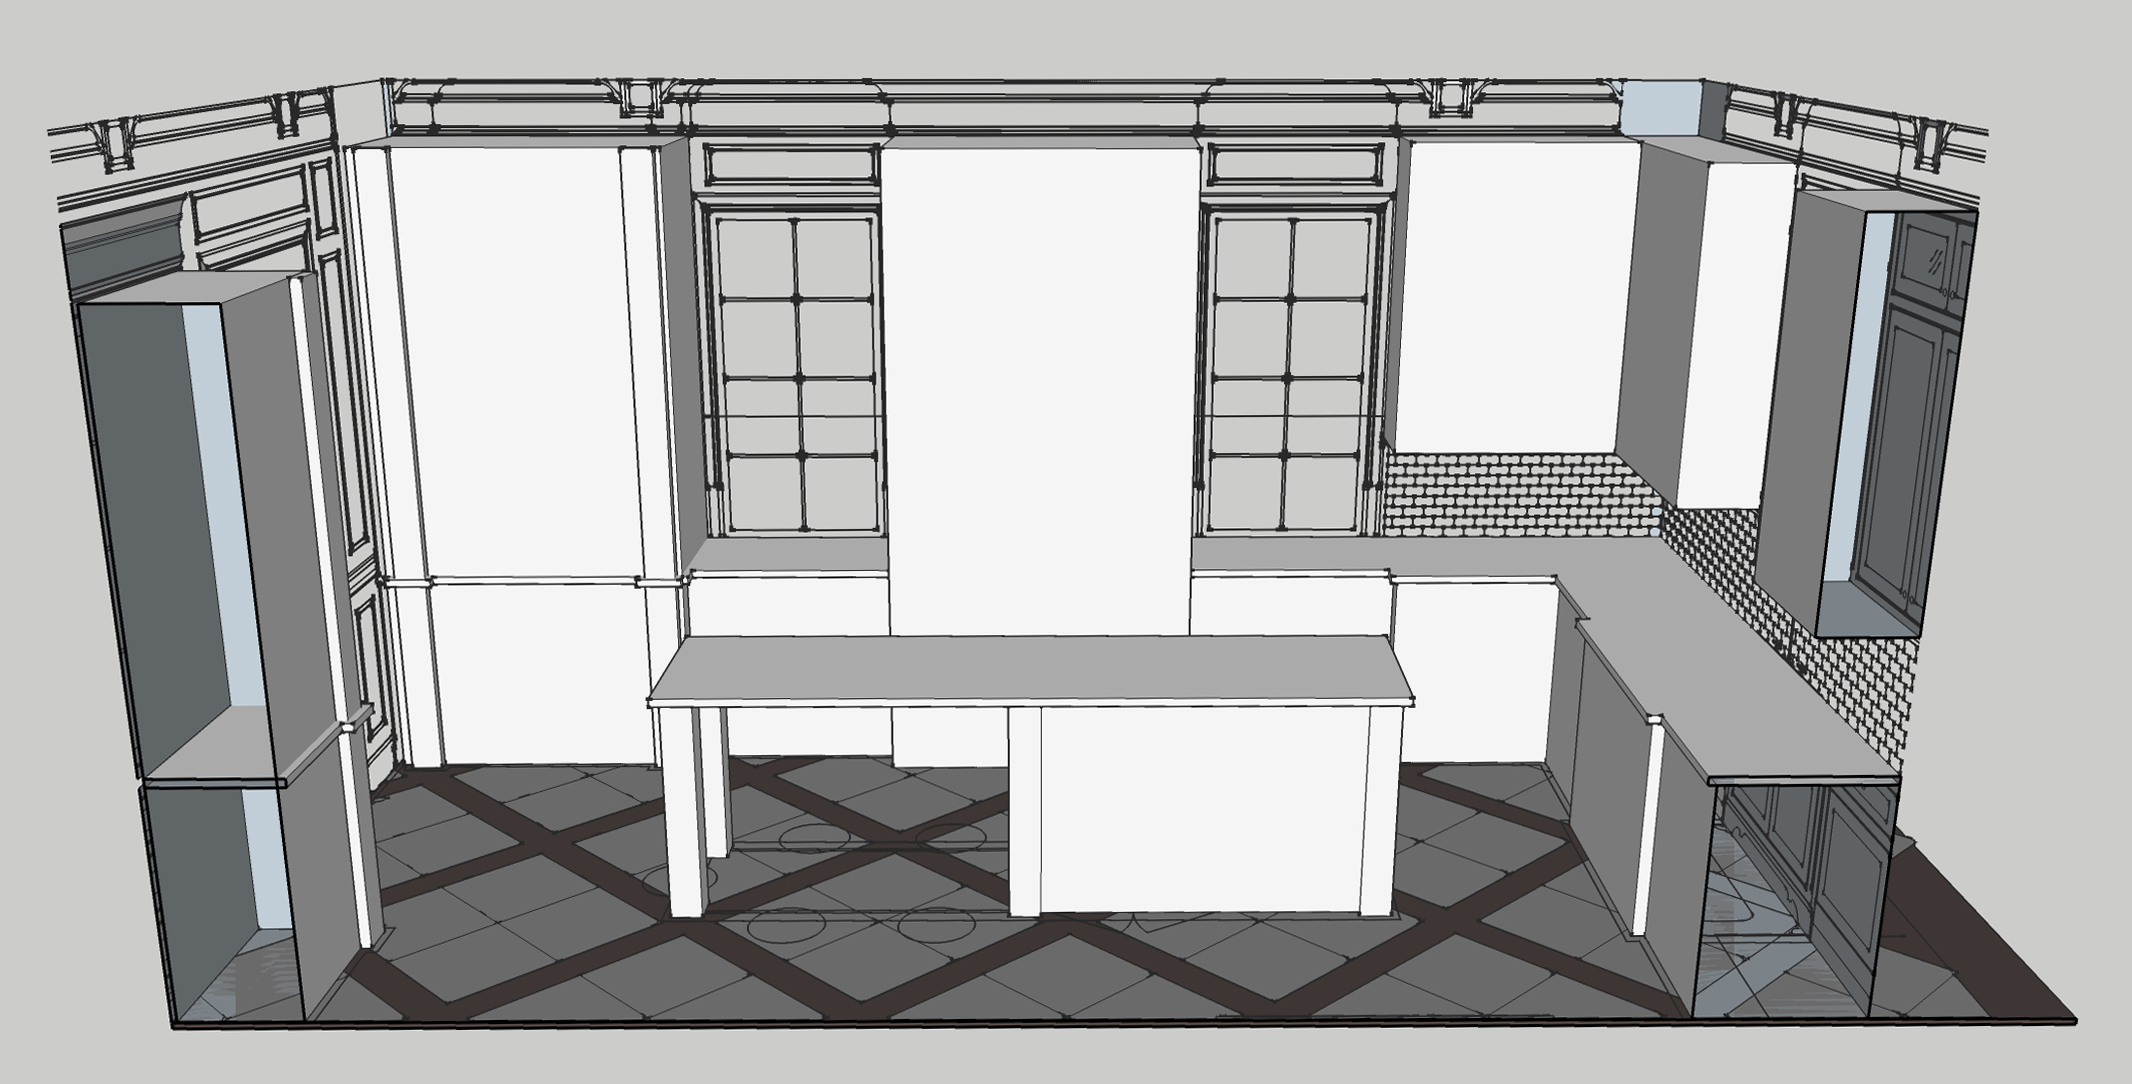 Davis_Kitchen_floor layout_Section 2 copy.jpg